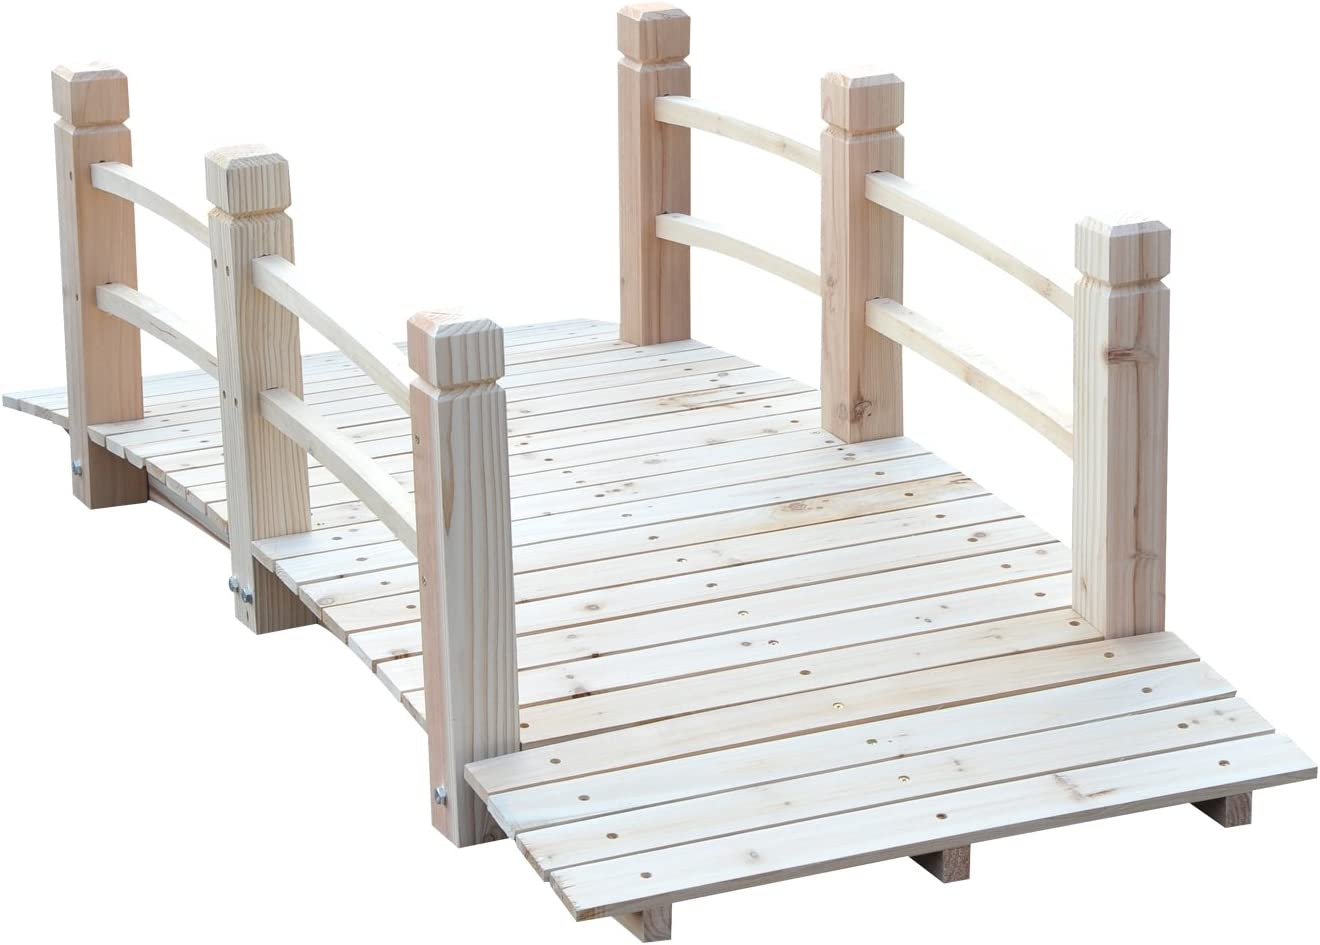 Outsunny 5' Wooden Rustic Decorative Garden Bridge with Railings - Natural Wood